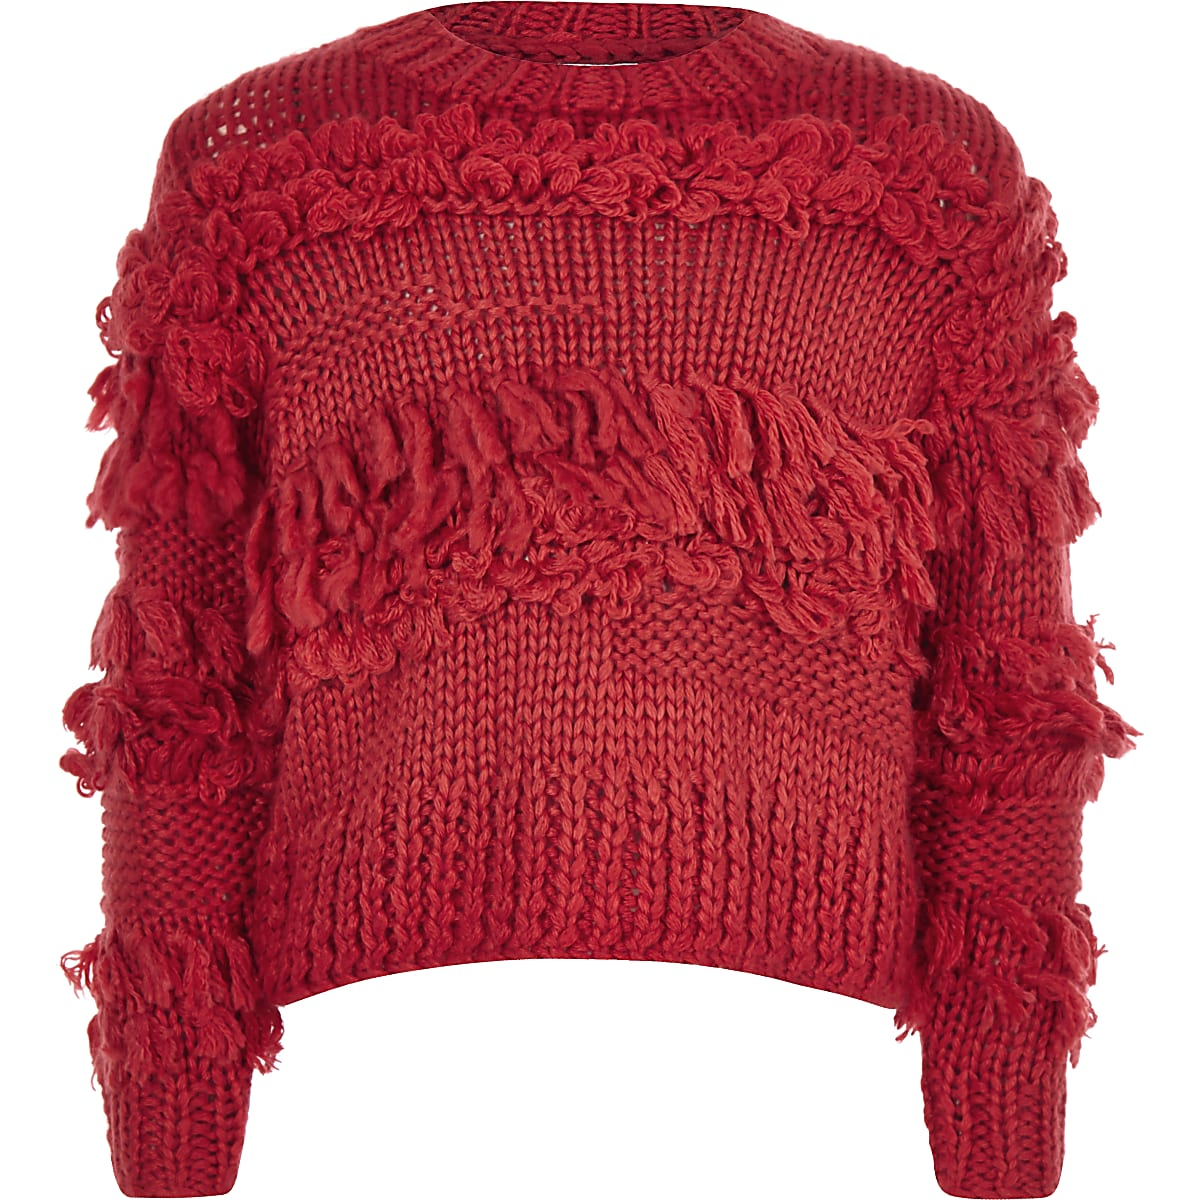 plus récent 60c65 3f57a Girls red fringe trim hand knitted jumper